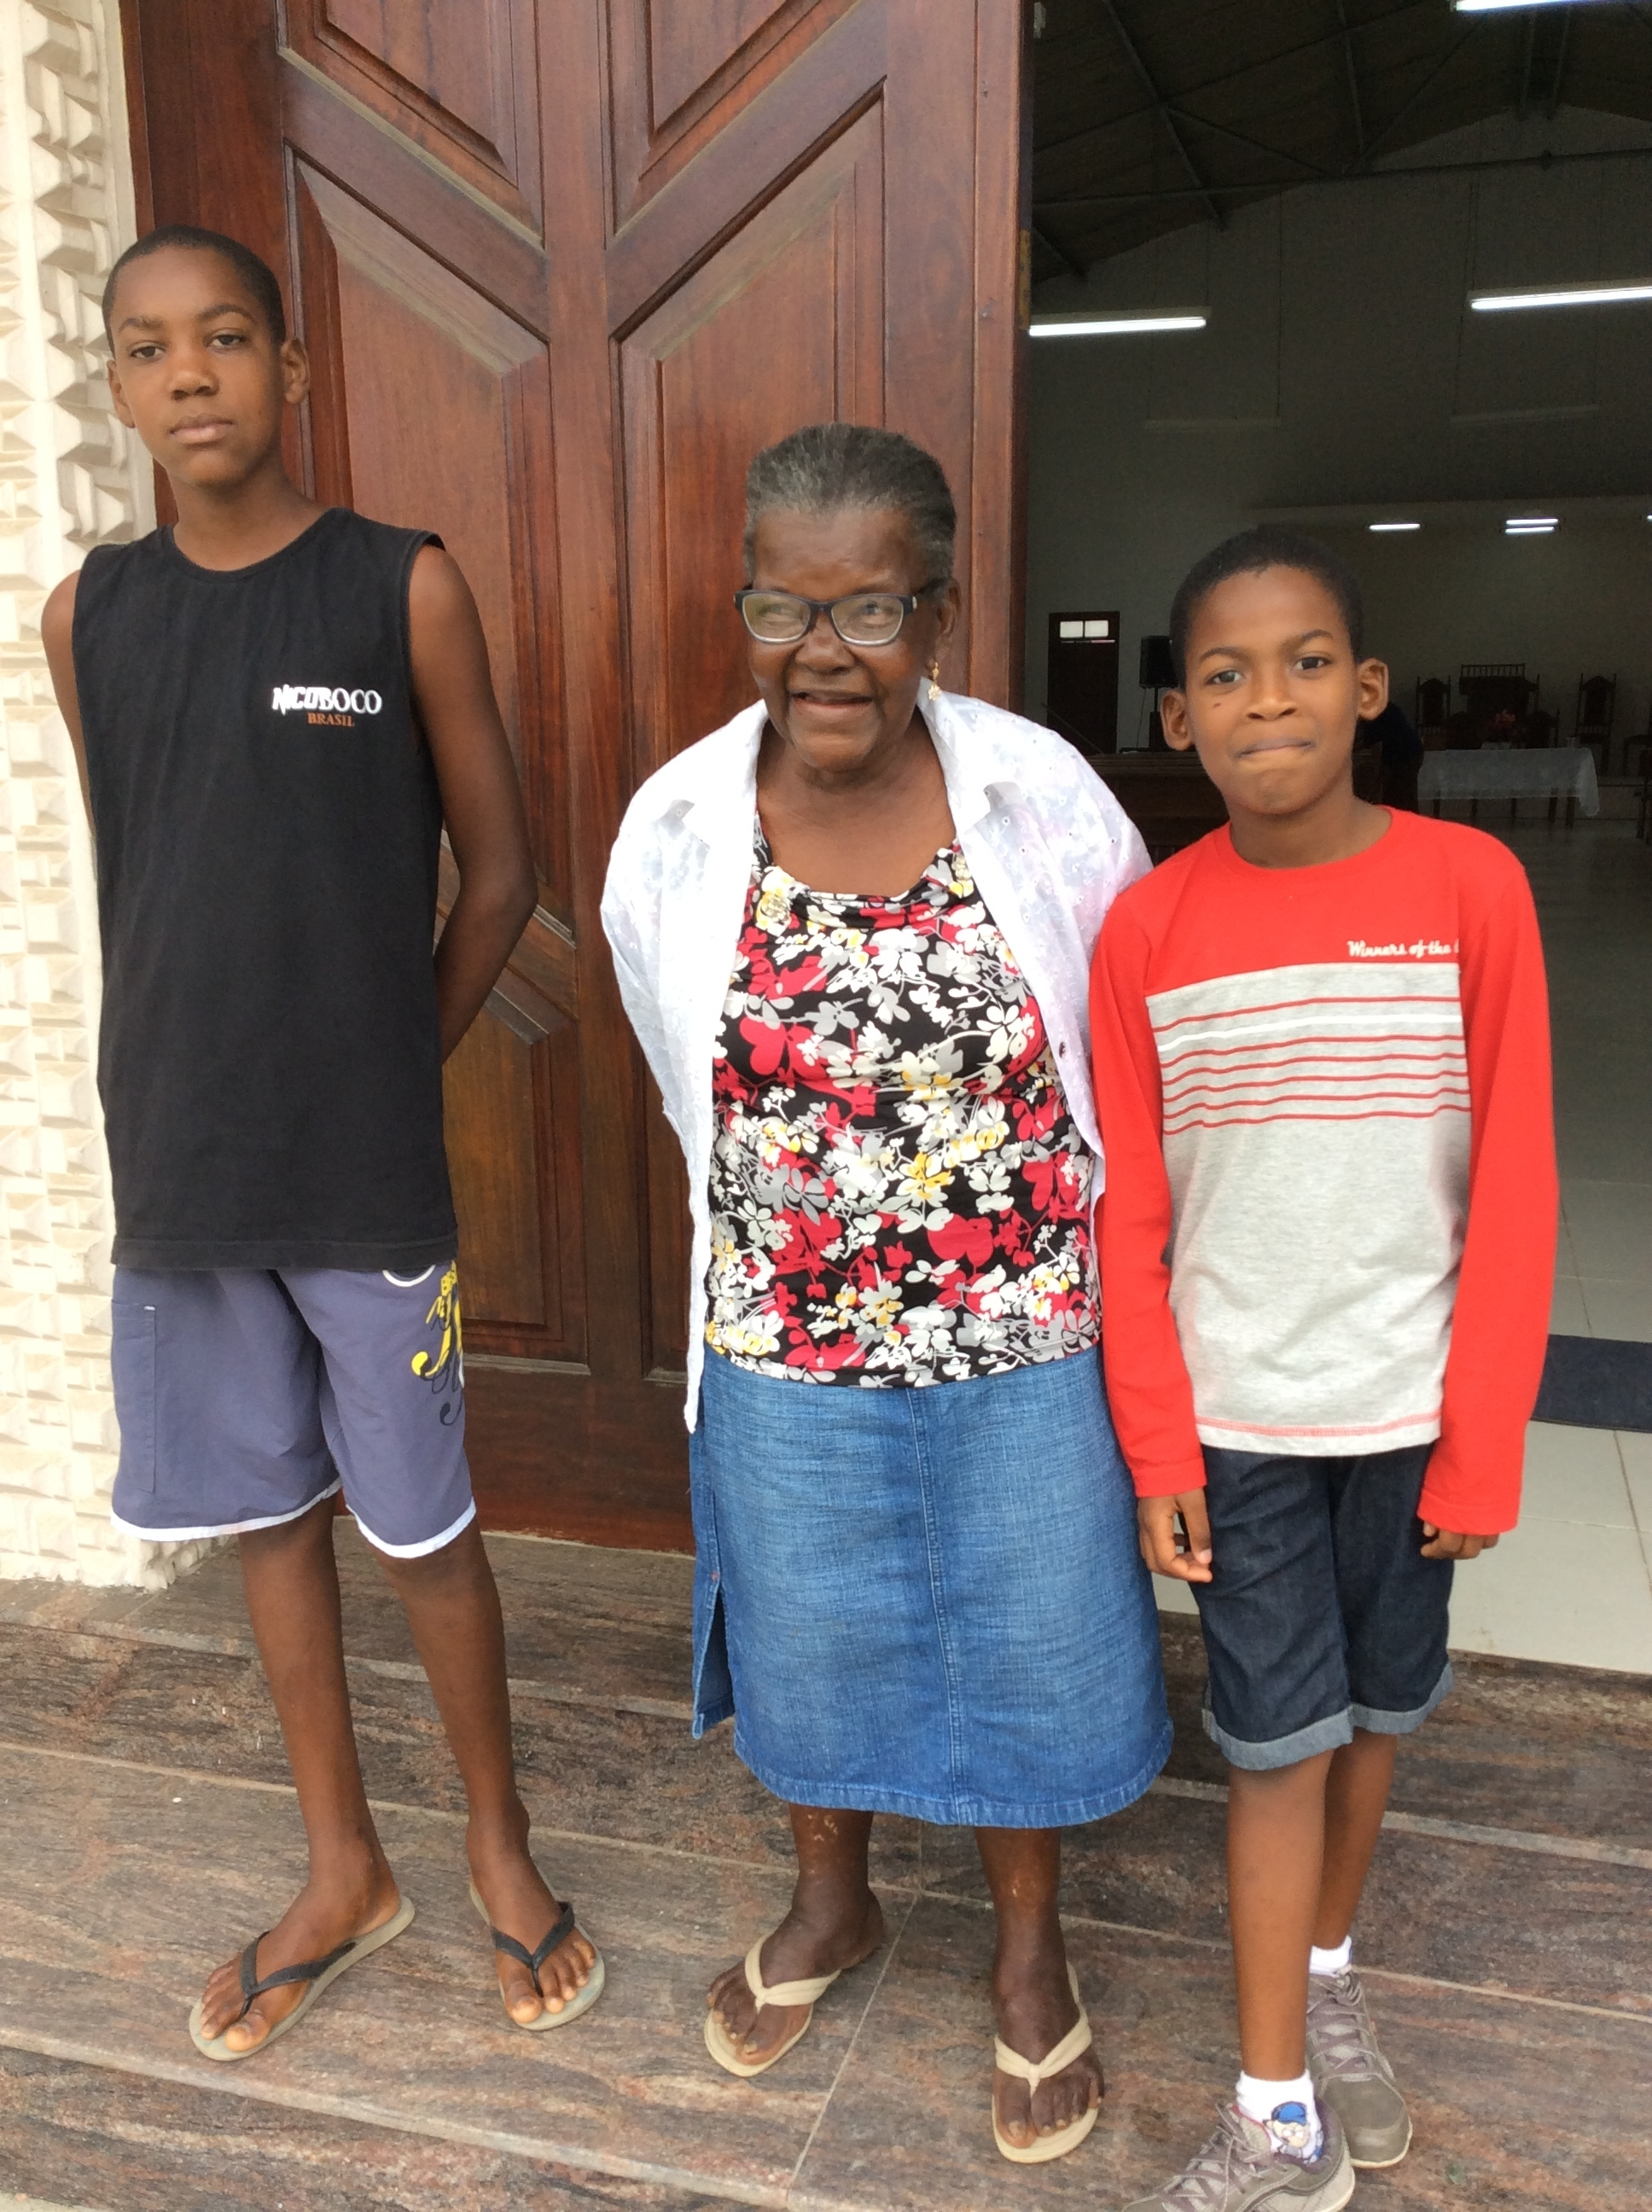 Maria Galio with two of her grandsons at Sunday School. Diogo, on the left, is a polite, attentive student. Gabriel, on the right, is taking Dorothy's English I class.